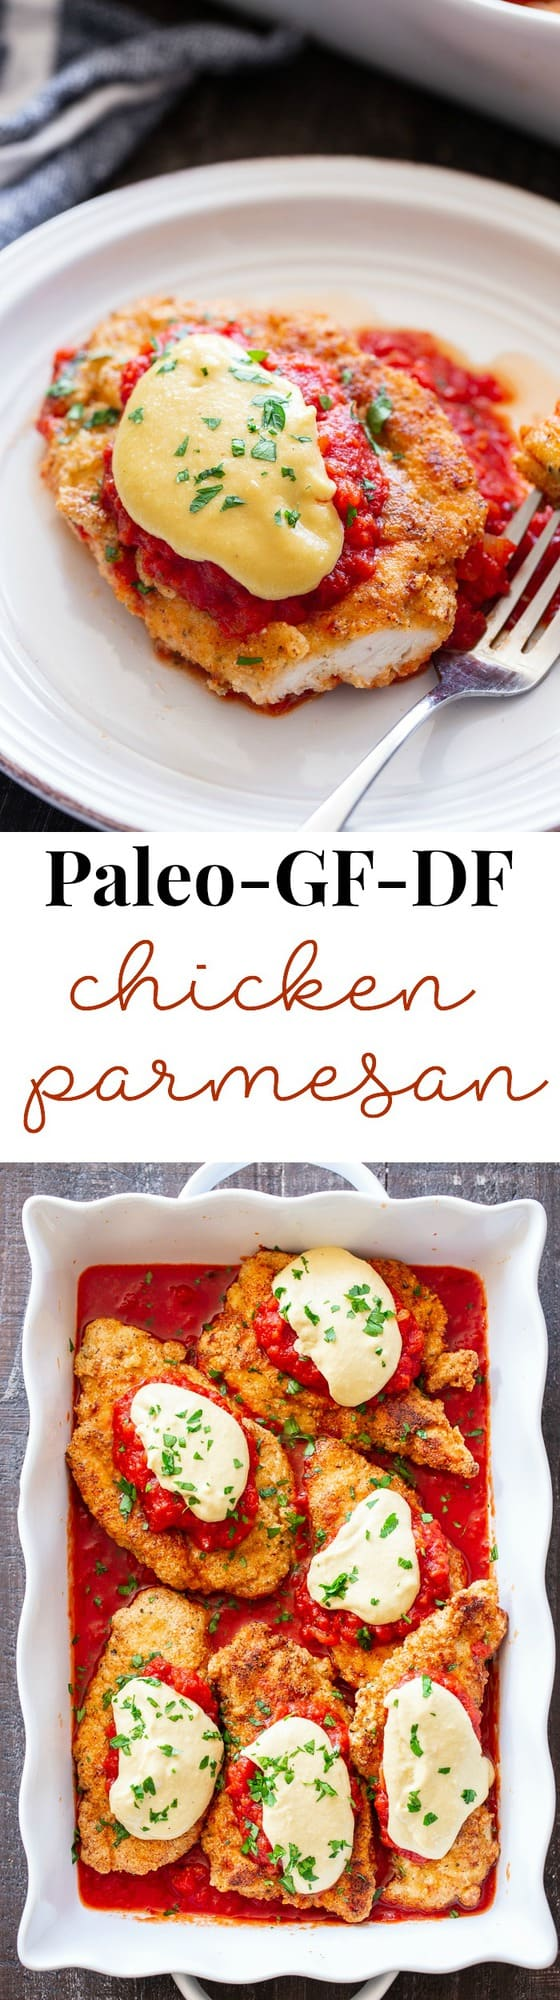 "This dairy-free and Paleo Chicken Parmesan has all the flavors of the real deal!  Crisp ""breaded"" chicken cutlets are layered with marinara and a flavor-packed cashew ""cheese"" sauce that's perfect for any special dinner.   Gluten-free, no sugar added, dairy-free."